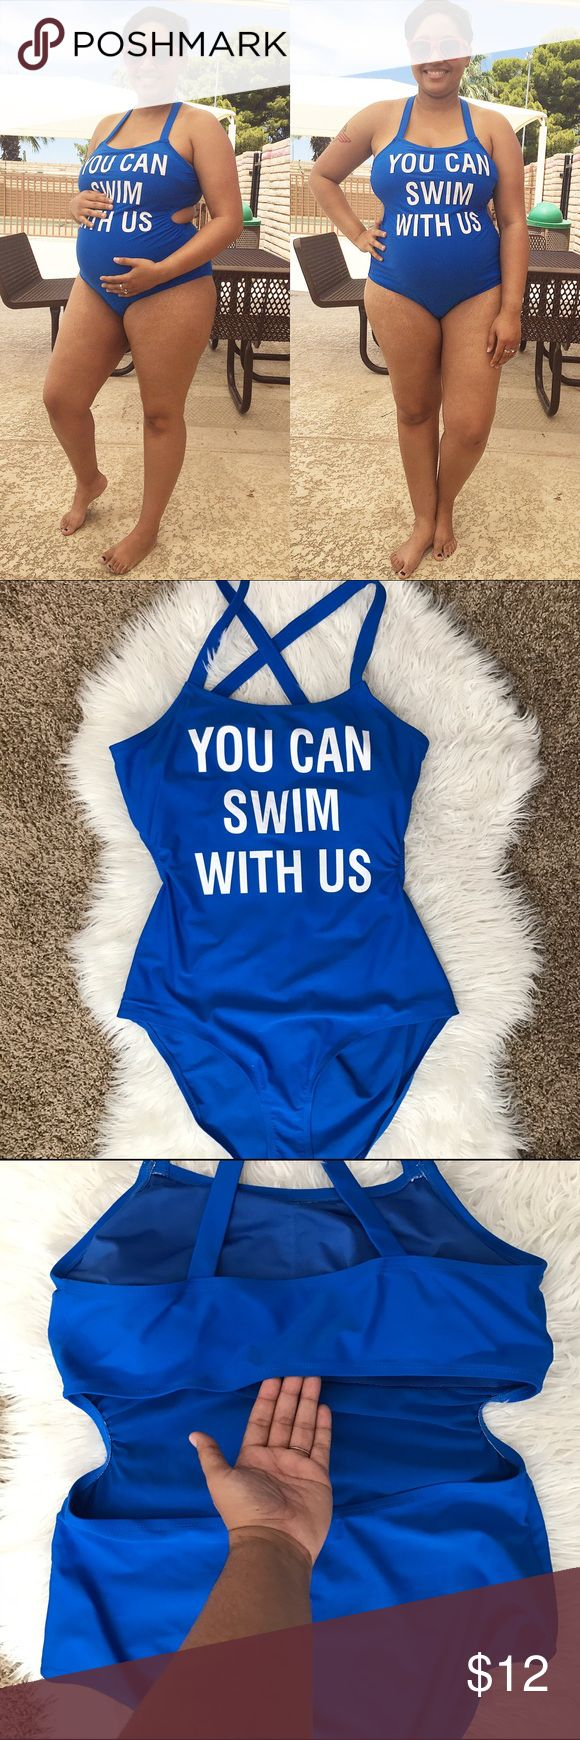 ♀️Blue One Piece Swimsuit♀️ Cute bathing suit. Worn once while pregnant. Open back and criss cross straps. Great condition. Forever 21 Swim One Pieces